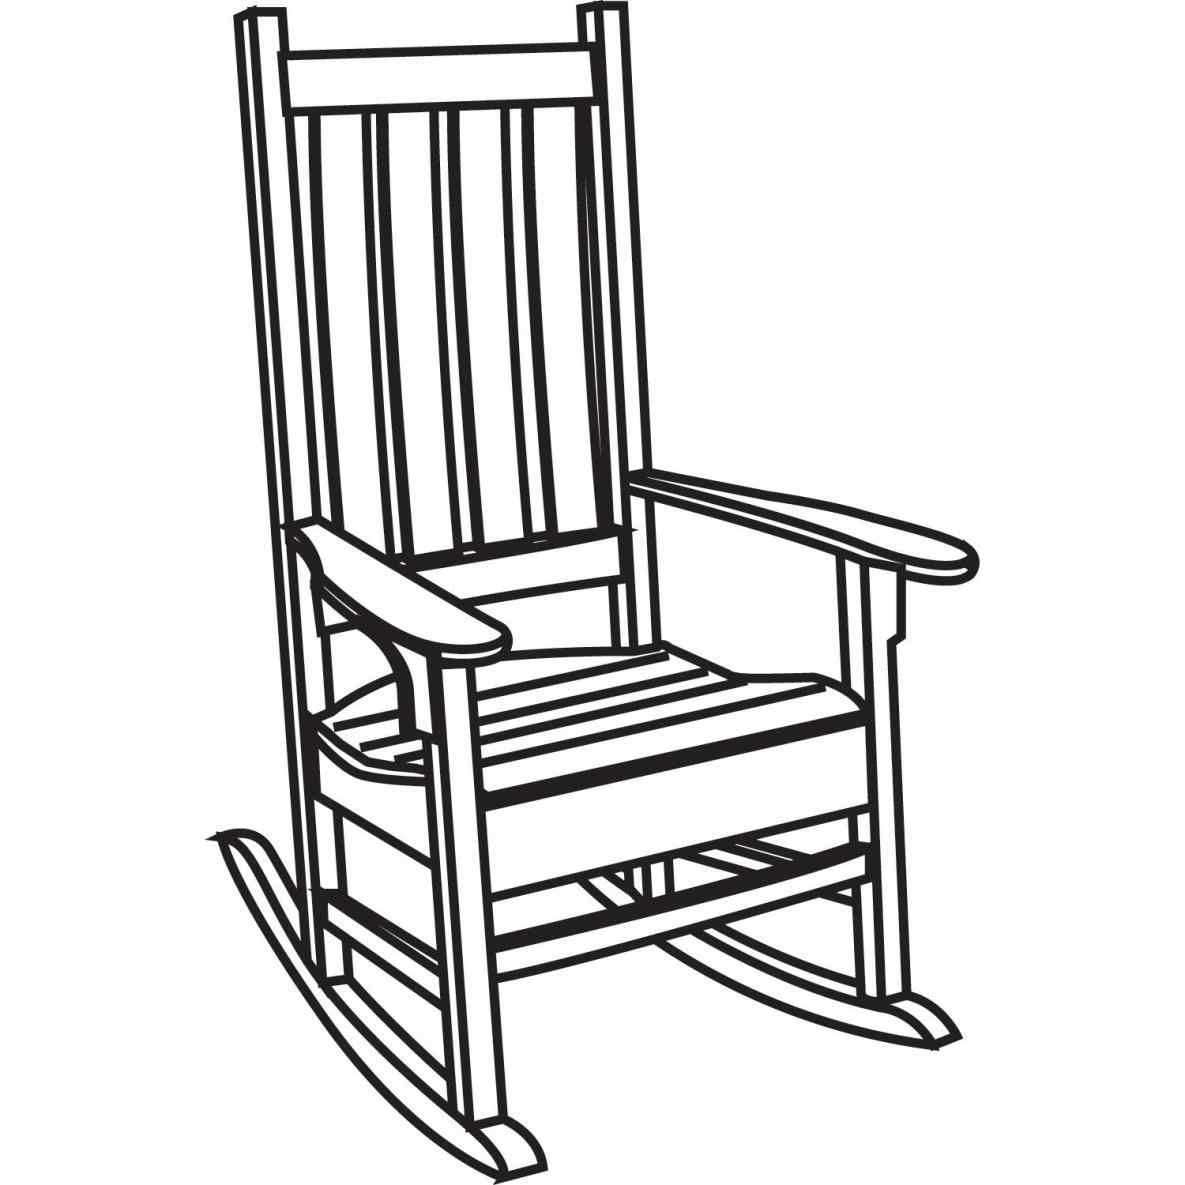 1185x1185 The Images Collection Of Rocking Chair Clipart Black And White